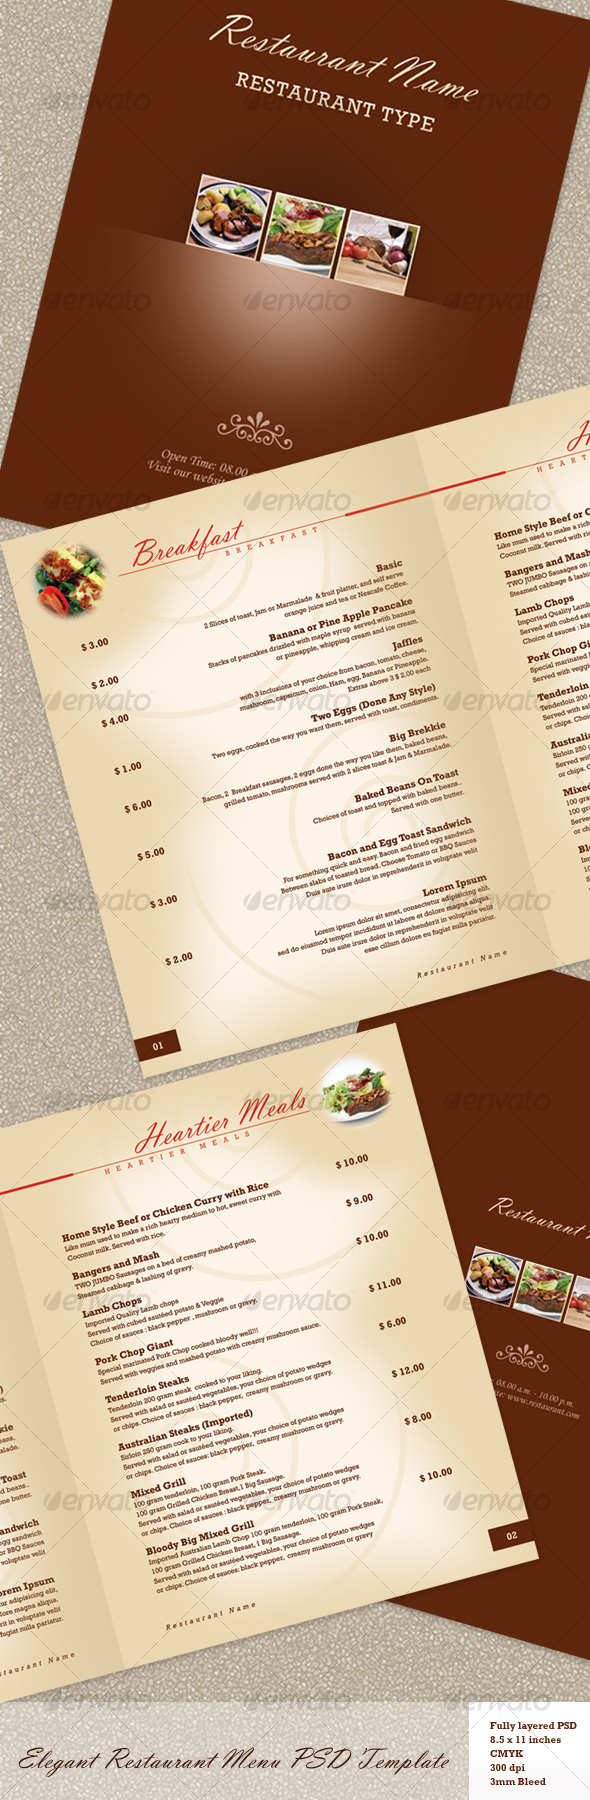 60 premium restaurant menu templates dzineflip for Restaurant menu psd